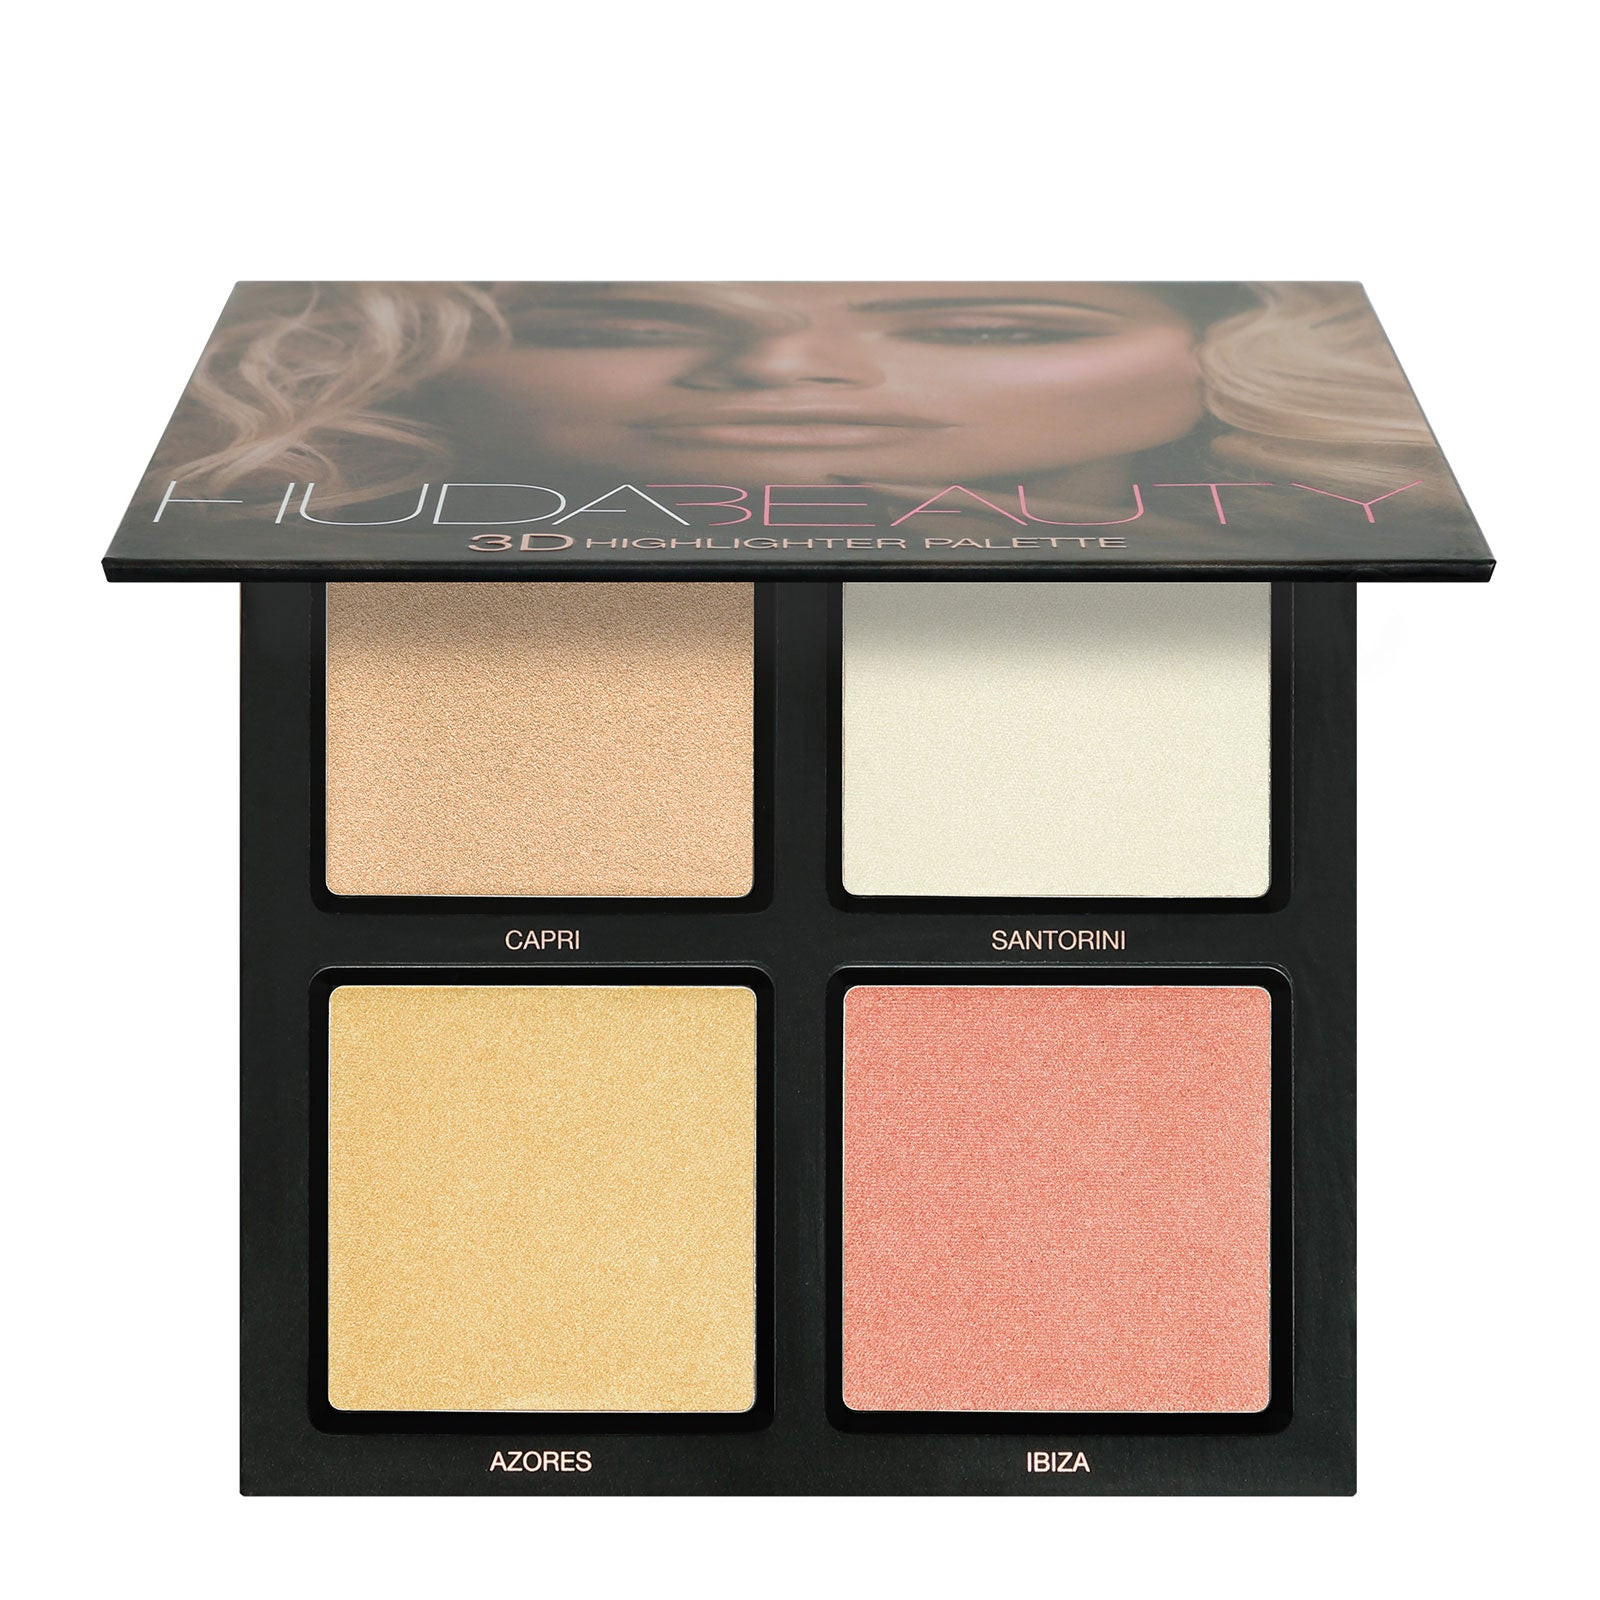 Huda Beauty 3D Highlight Palette Pink Sands 30g